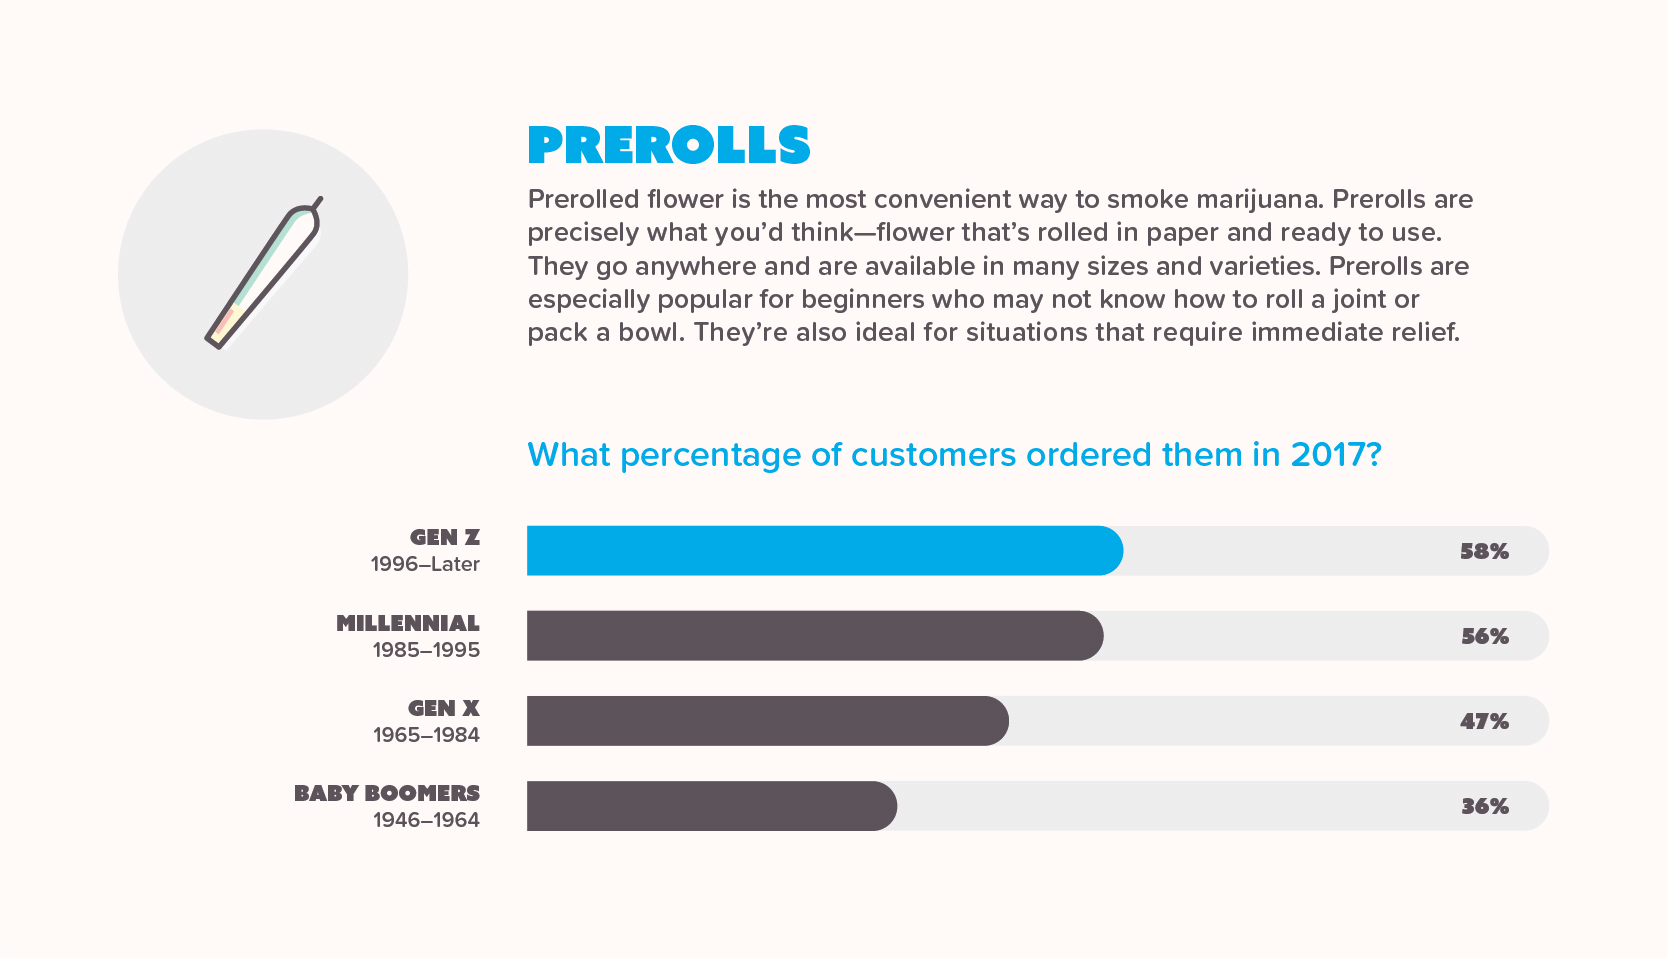 Infographic showing preroll sales per generation in 2017